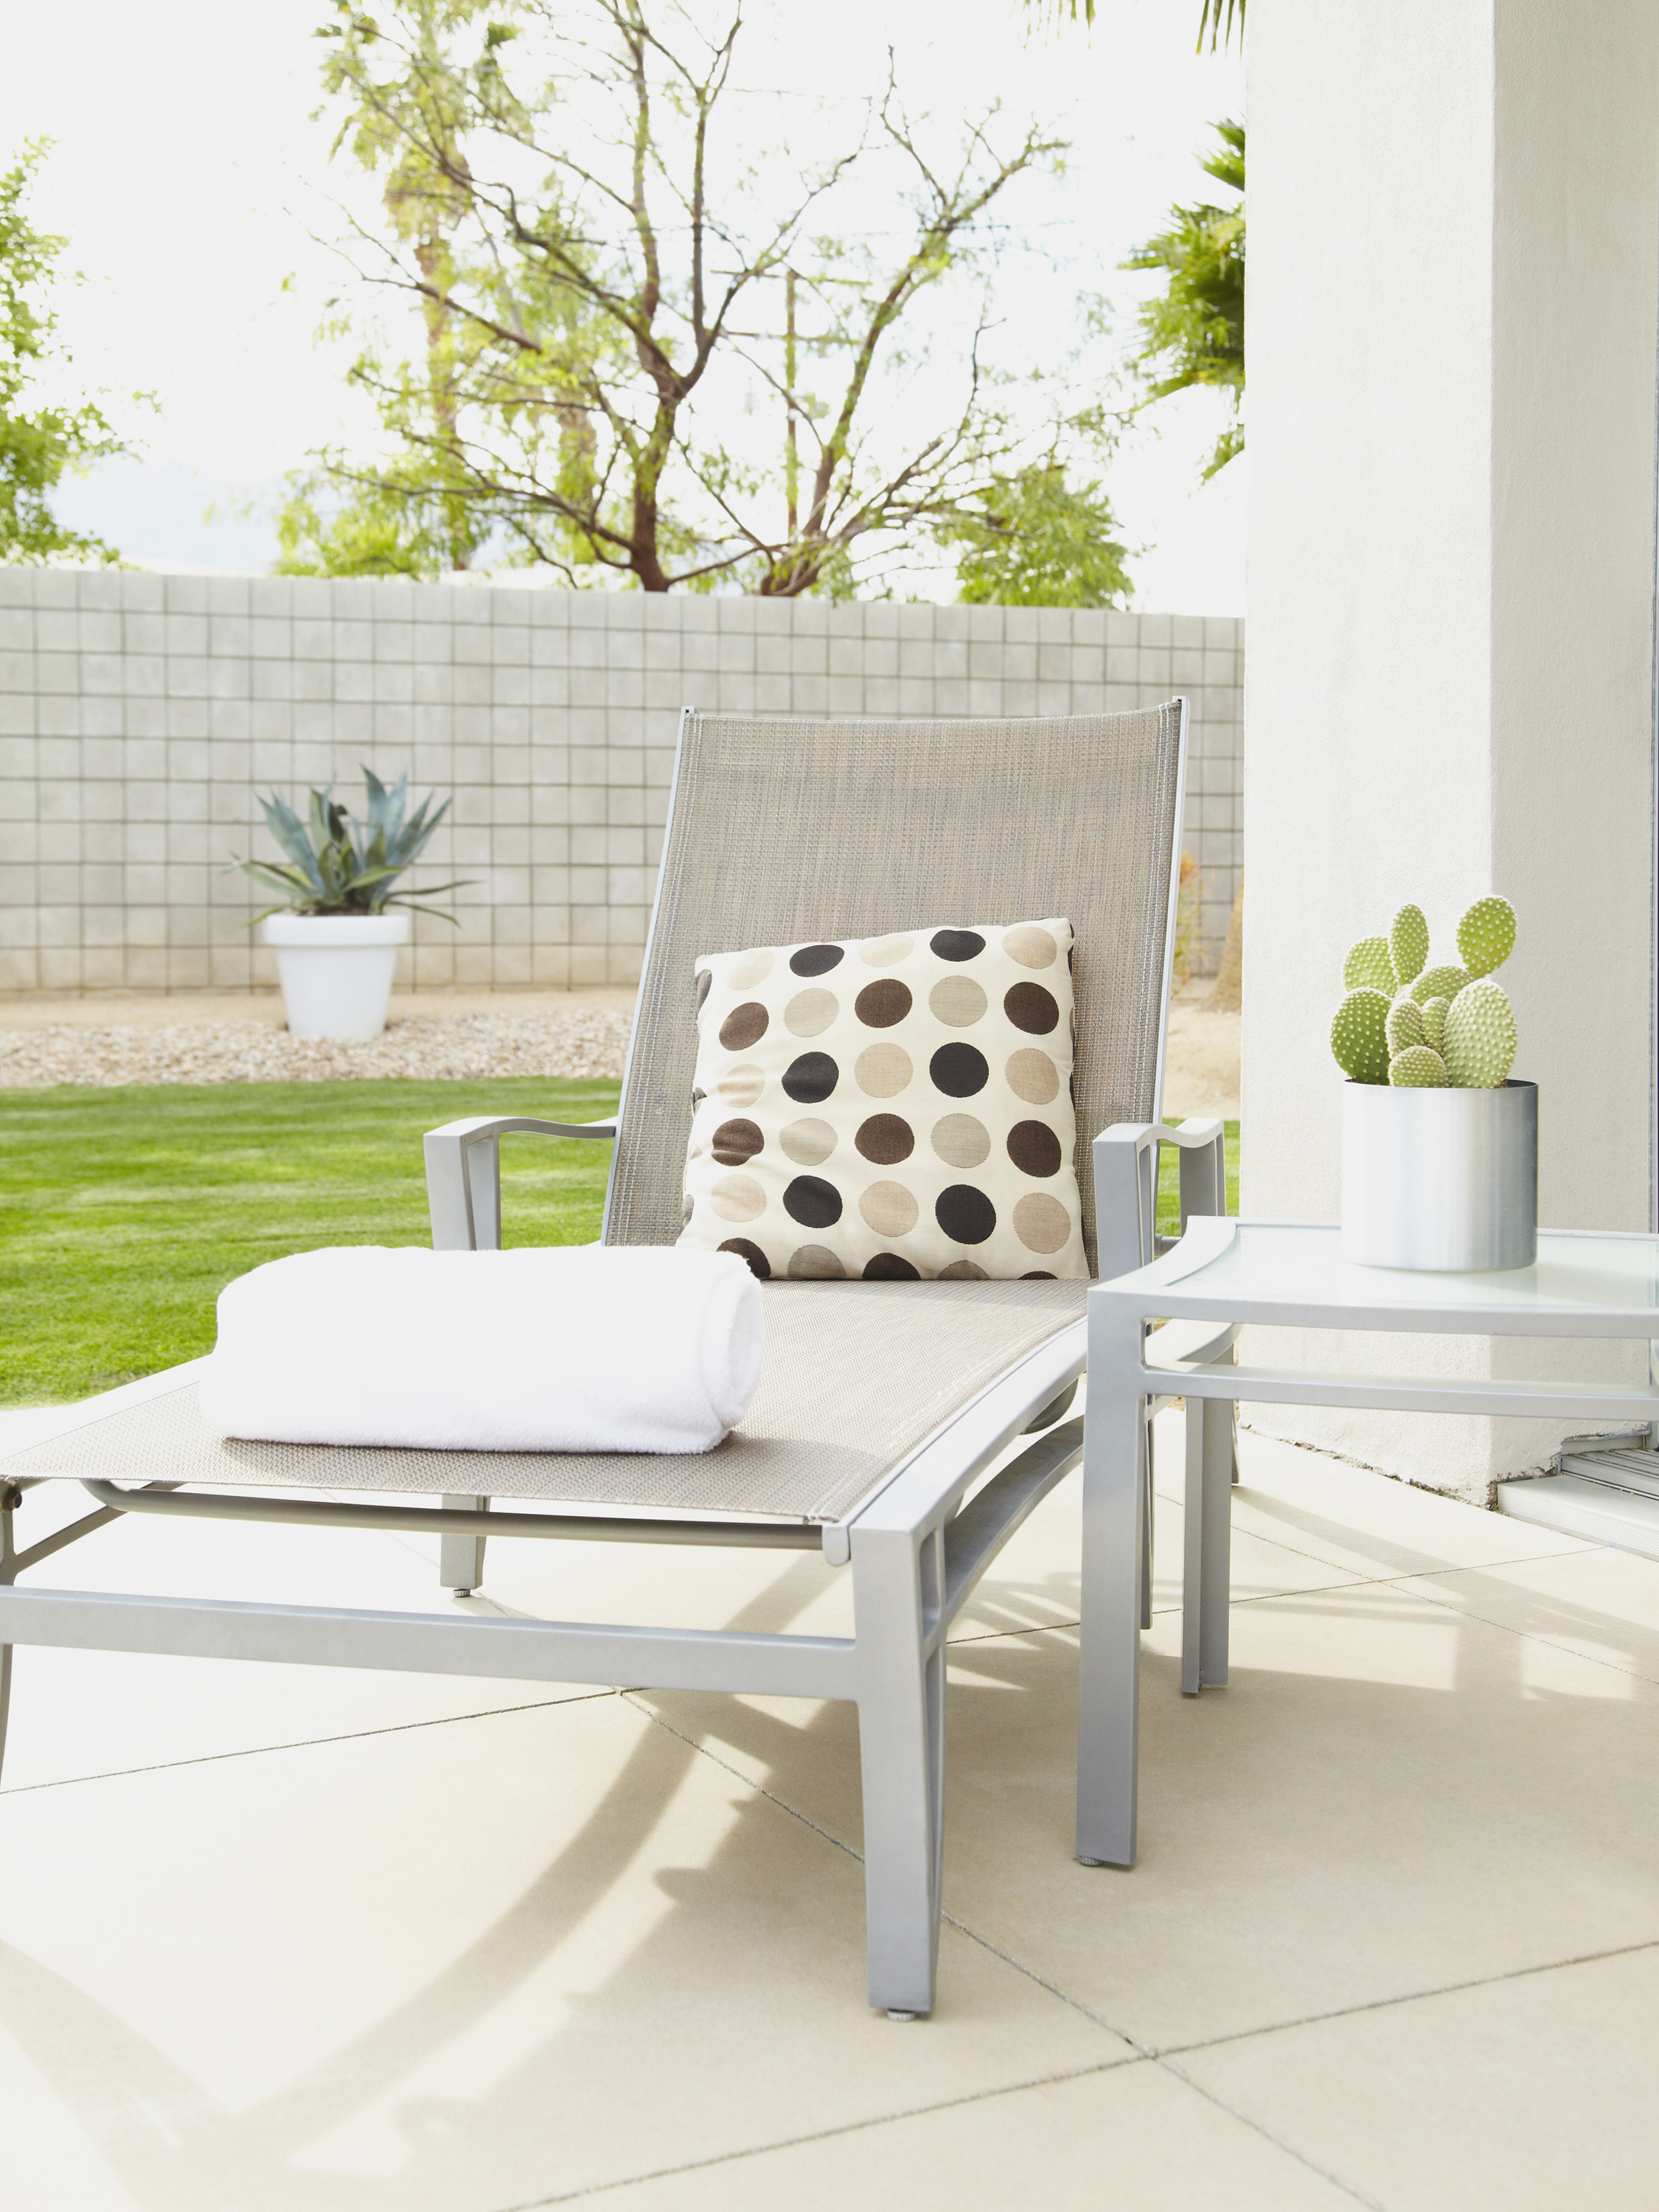 Customize an Outstanding Outdoor Space With Patio Furniture & More Wats